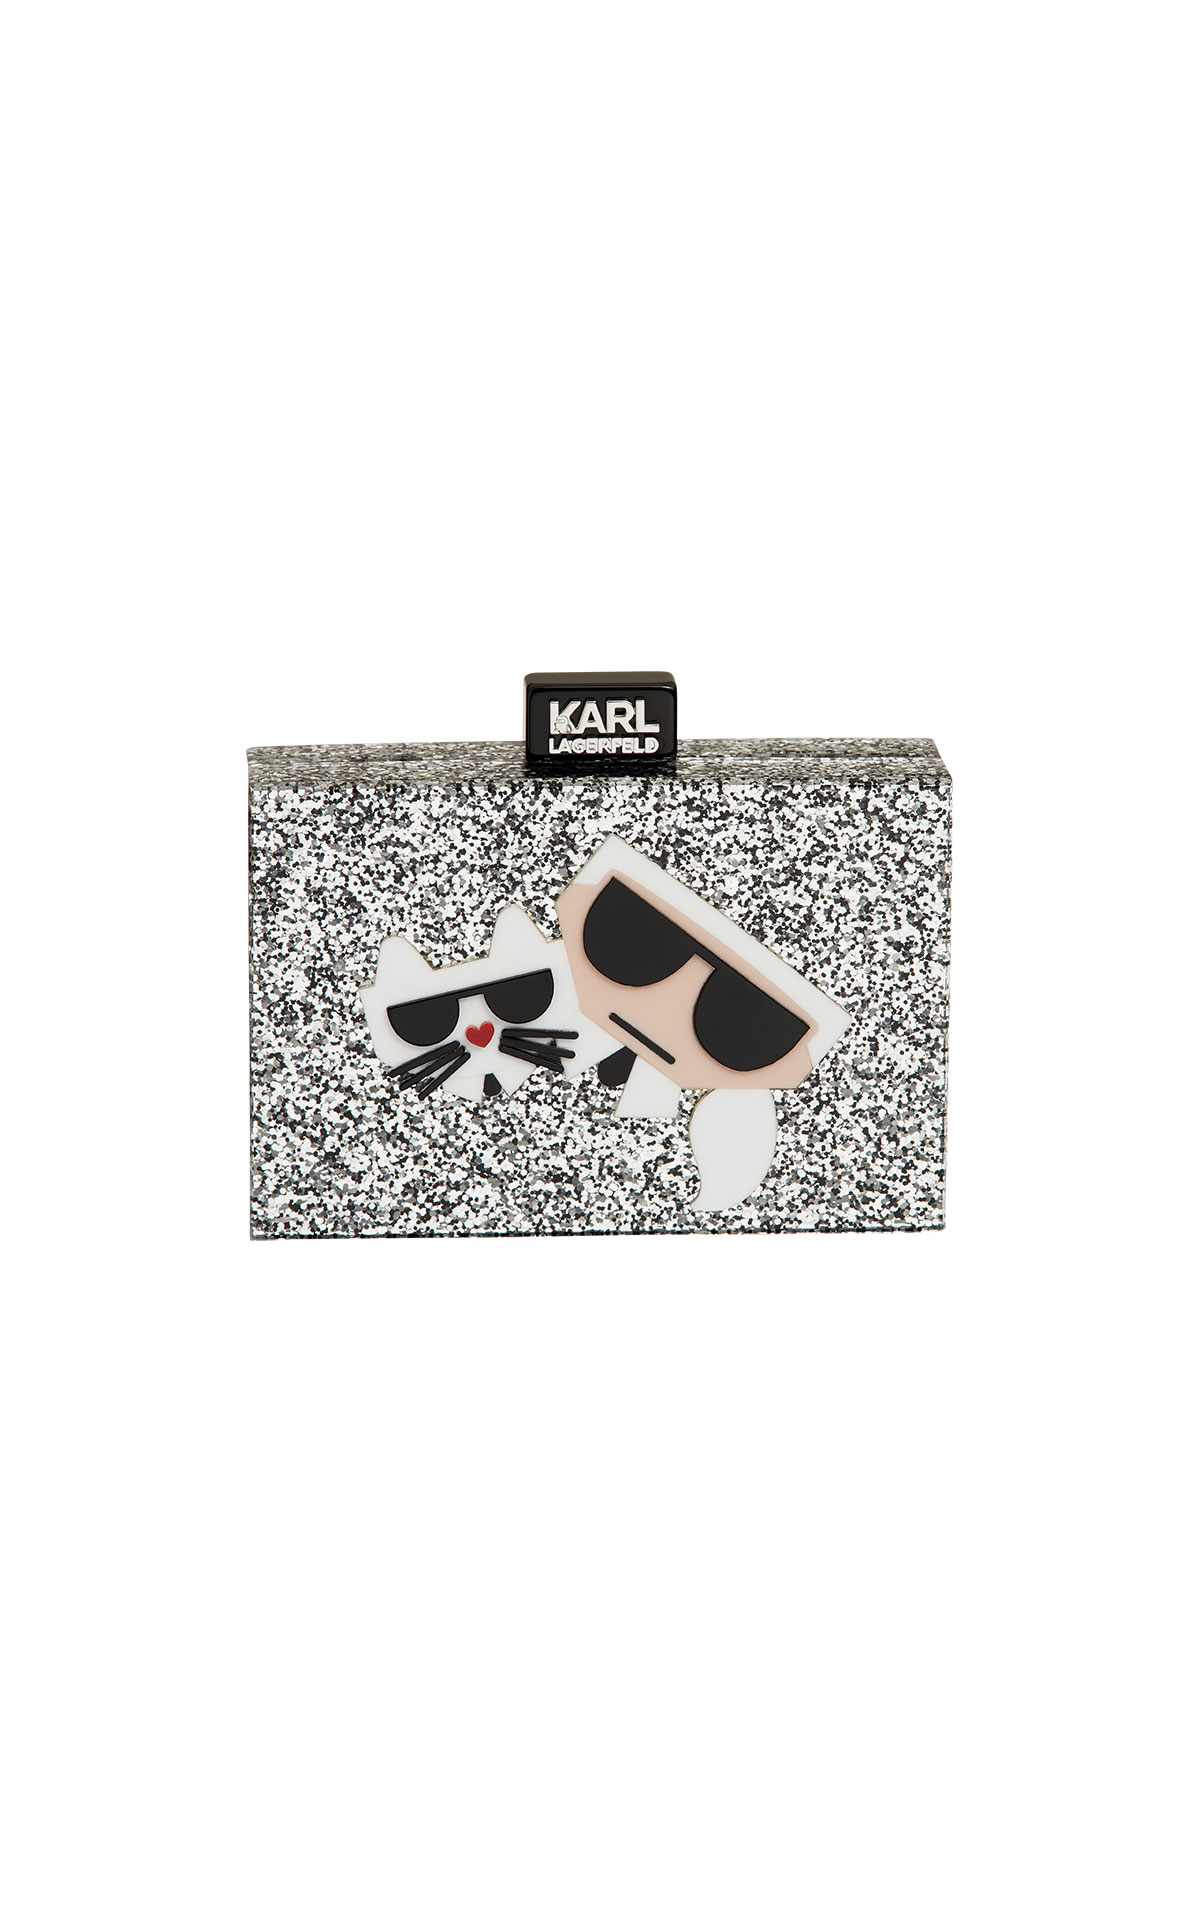 Karl Lagerfeld kocktail karl & choupette minaudiere at The Bicester Village Shopping Collection